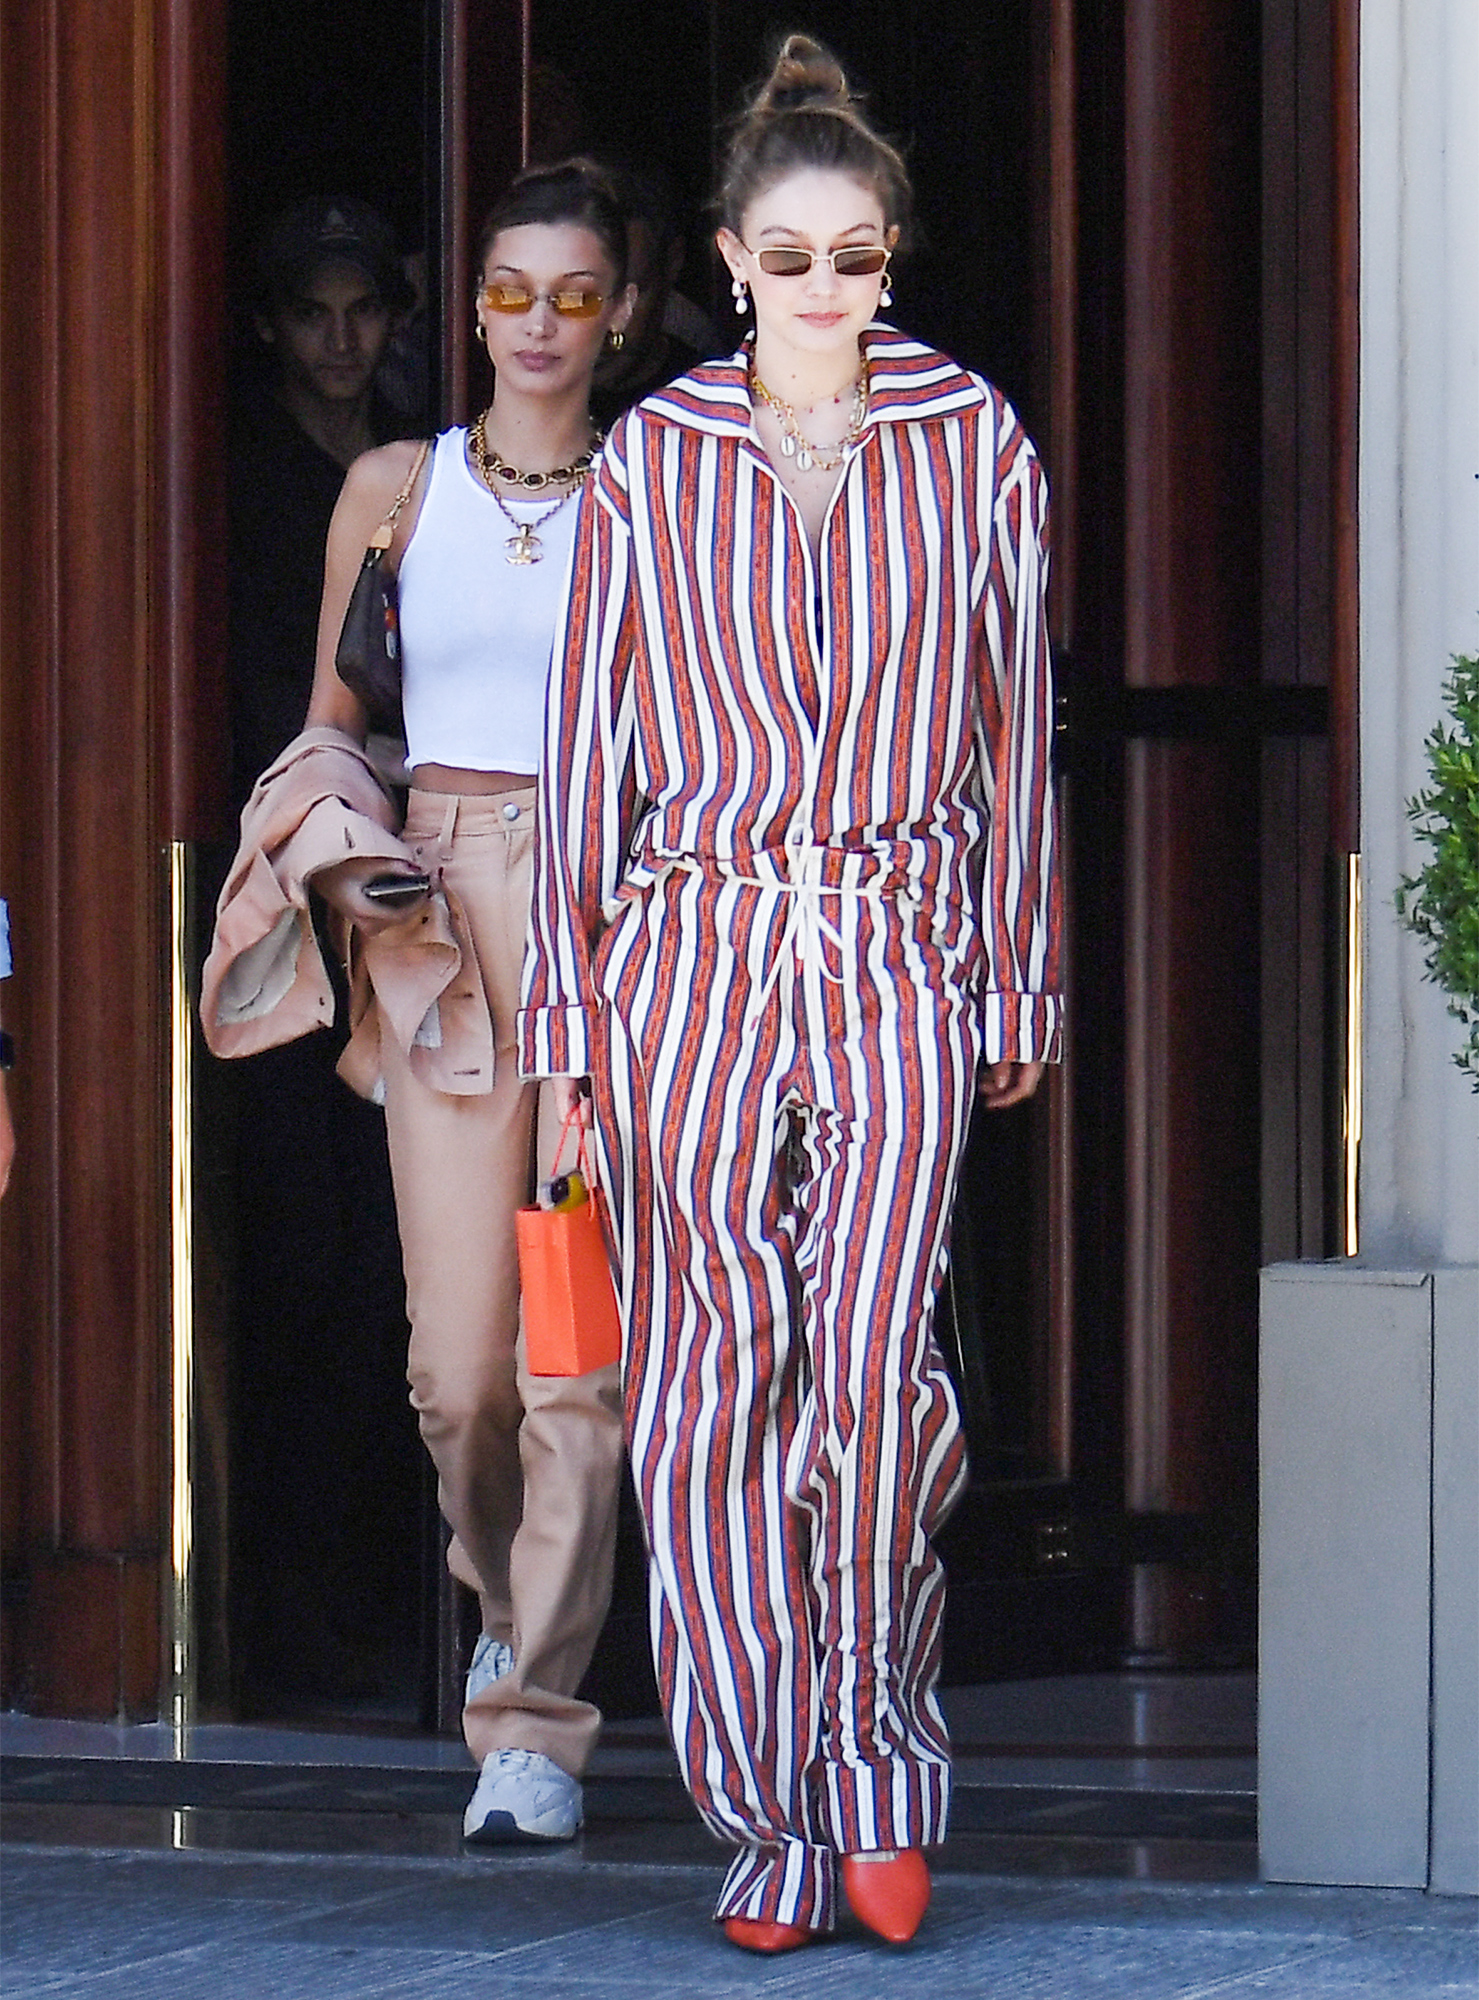 EXCLUSIVE: Bella Hadid and Gigi Hadid are Pictured Stepping Out in Florence, Italy.